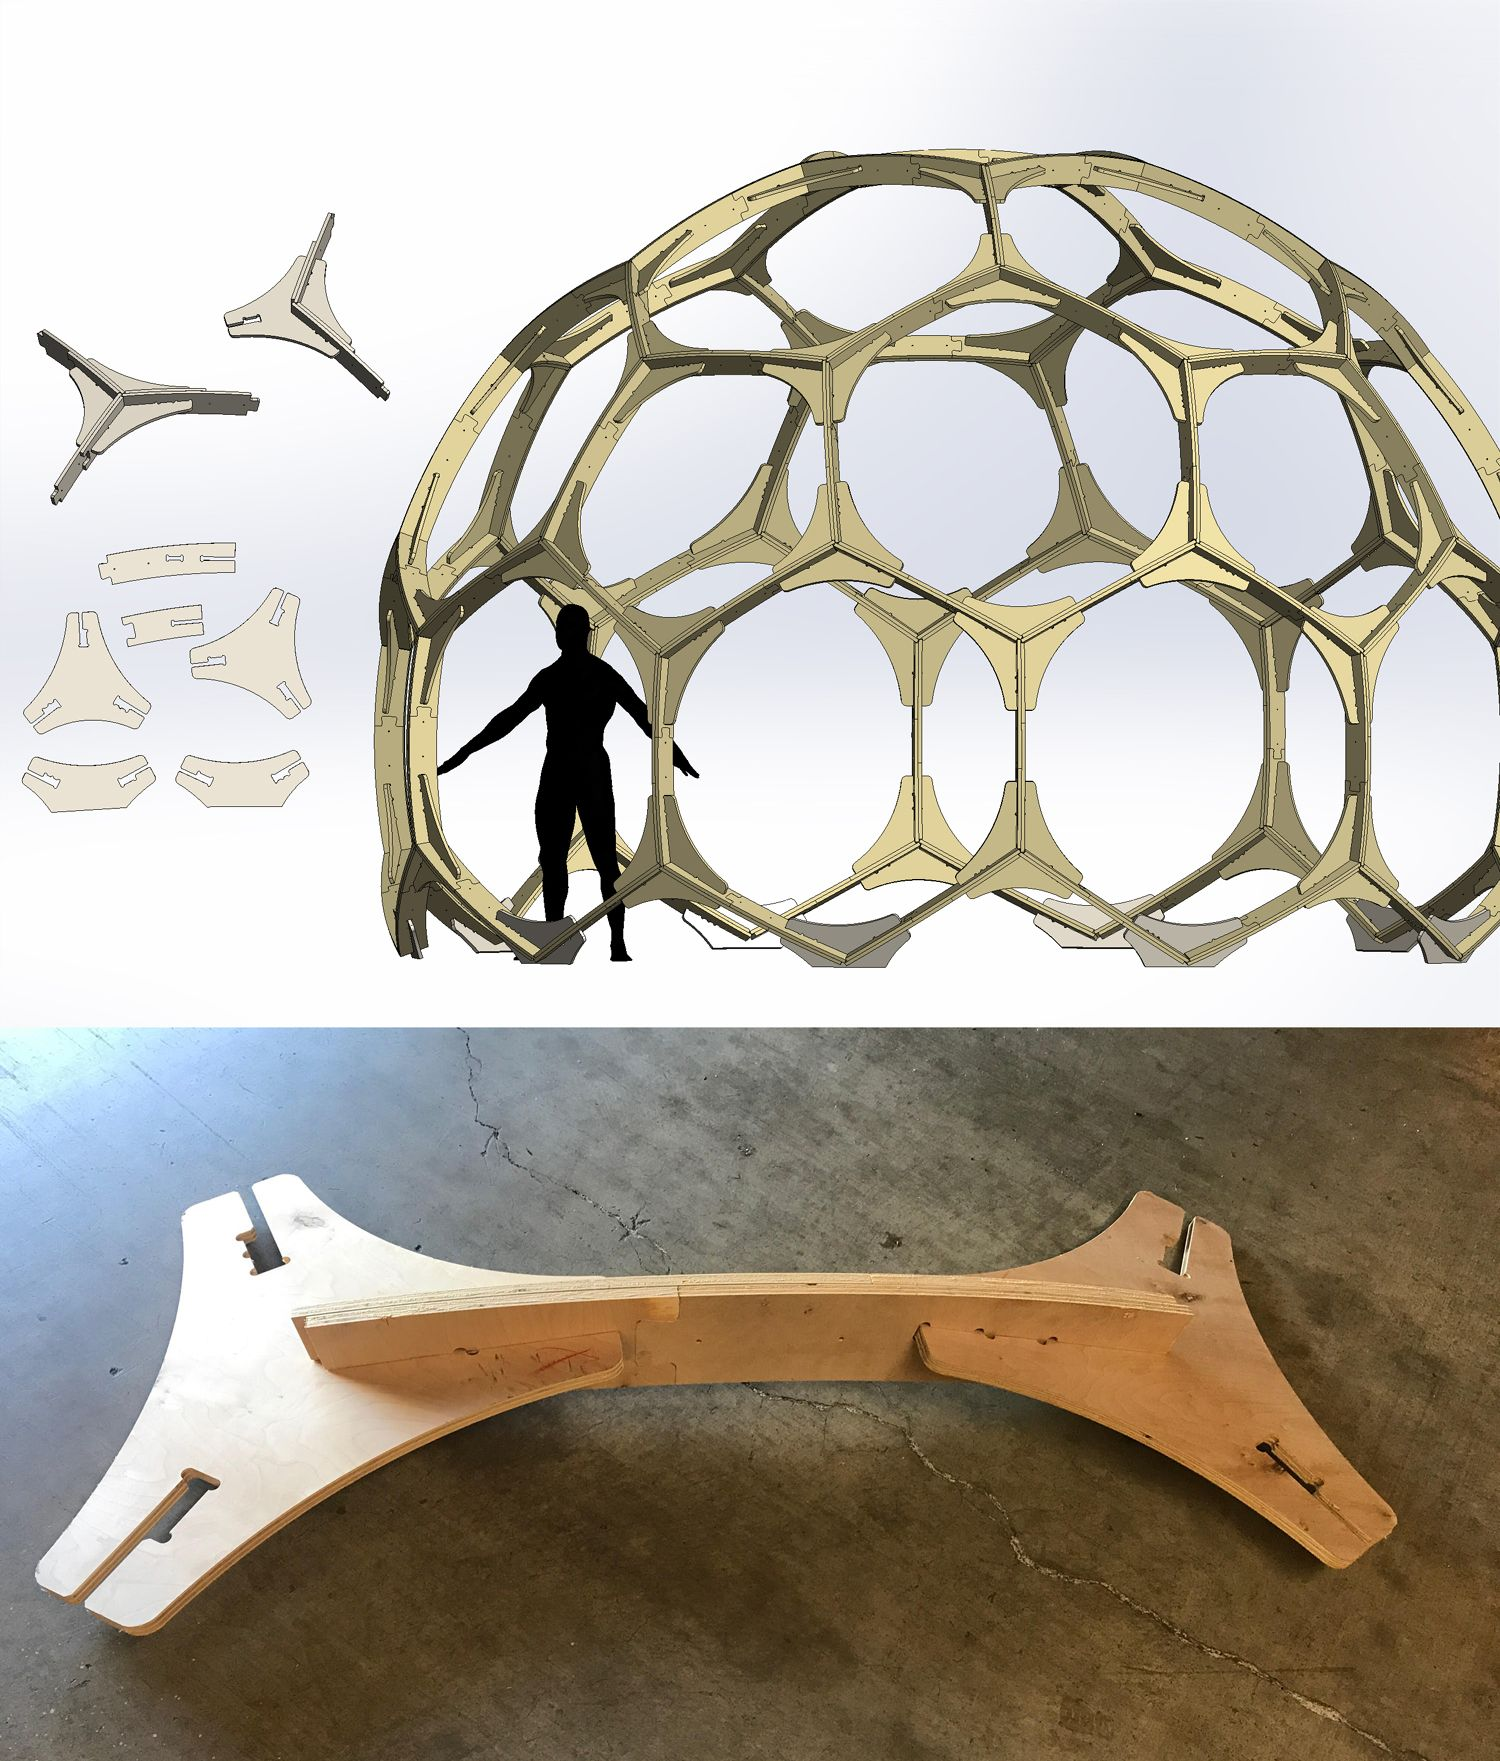 Steel Dome Homes: Geodesic Hex Dome CNC Plywood Modular Pattern